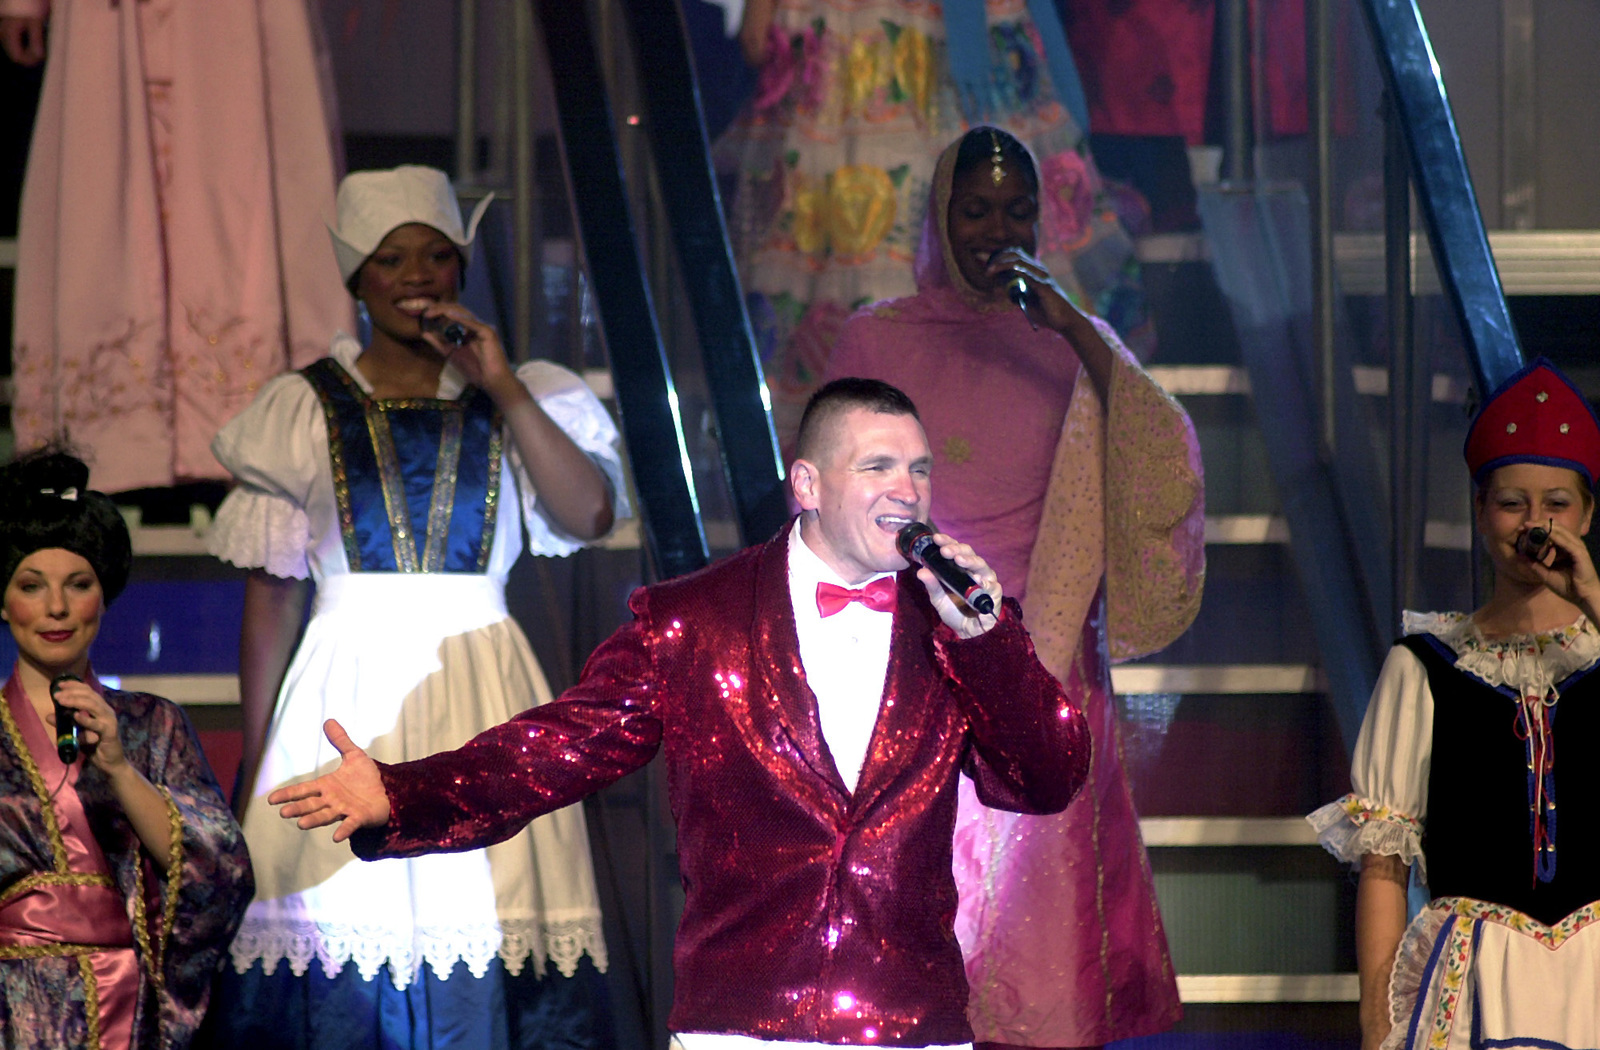 """US Air Force (USAF) MASTER Sergeant (MSGT) Bryan L. Langerud, 92nd Medical Support Squadron (MSS), Fairchild Air Force Base (AFB), Washington, performs """"Coming To America"""" at the """"Tops In Blue"""" concert, at Ramstein Air Base (AB), Germany"""